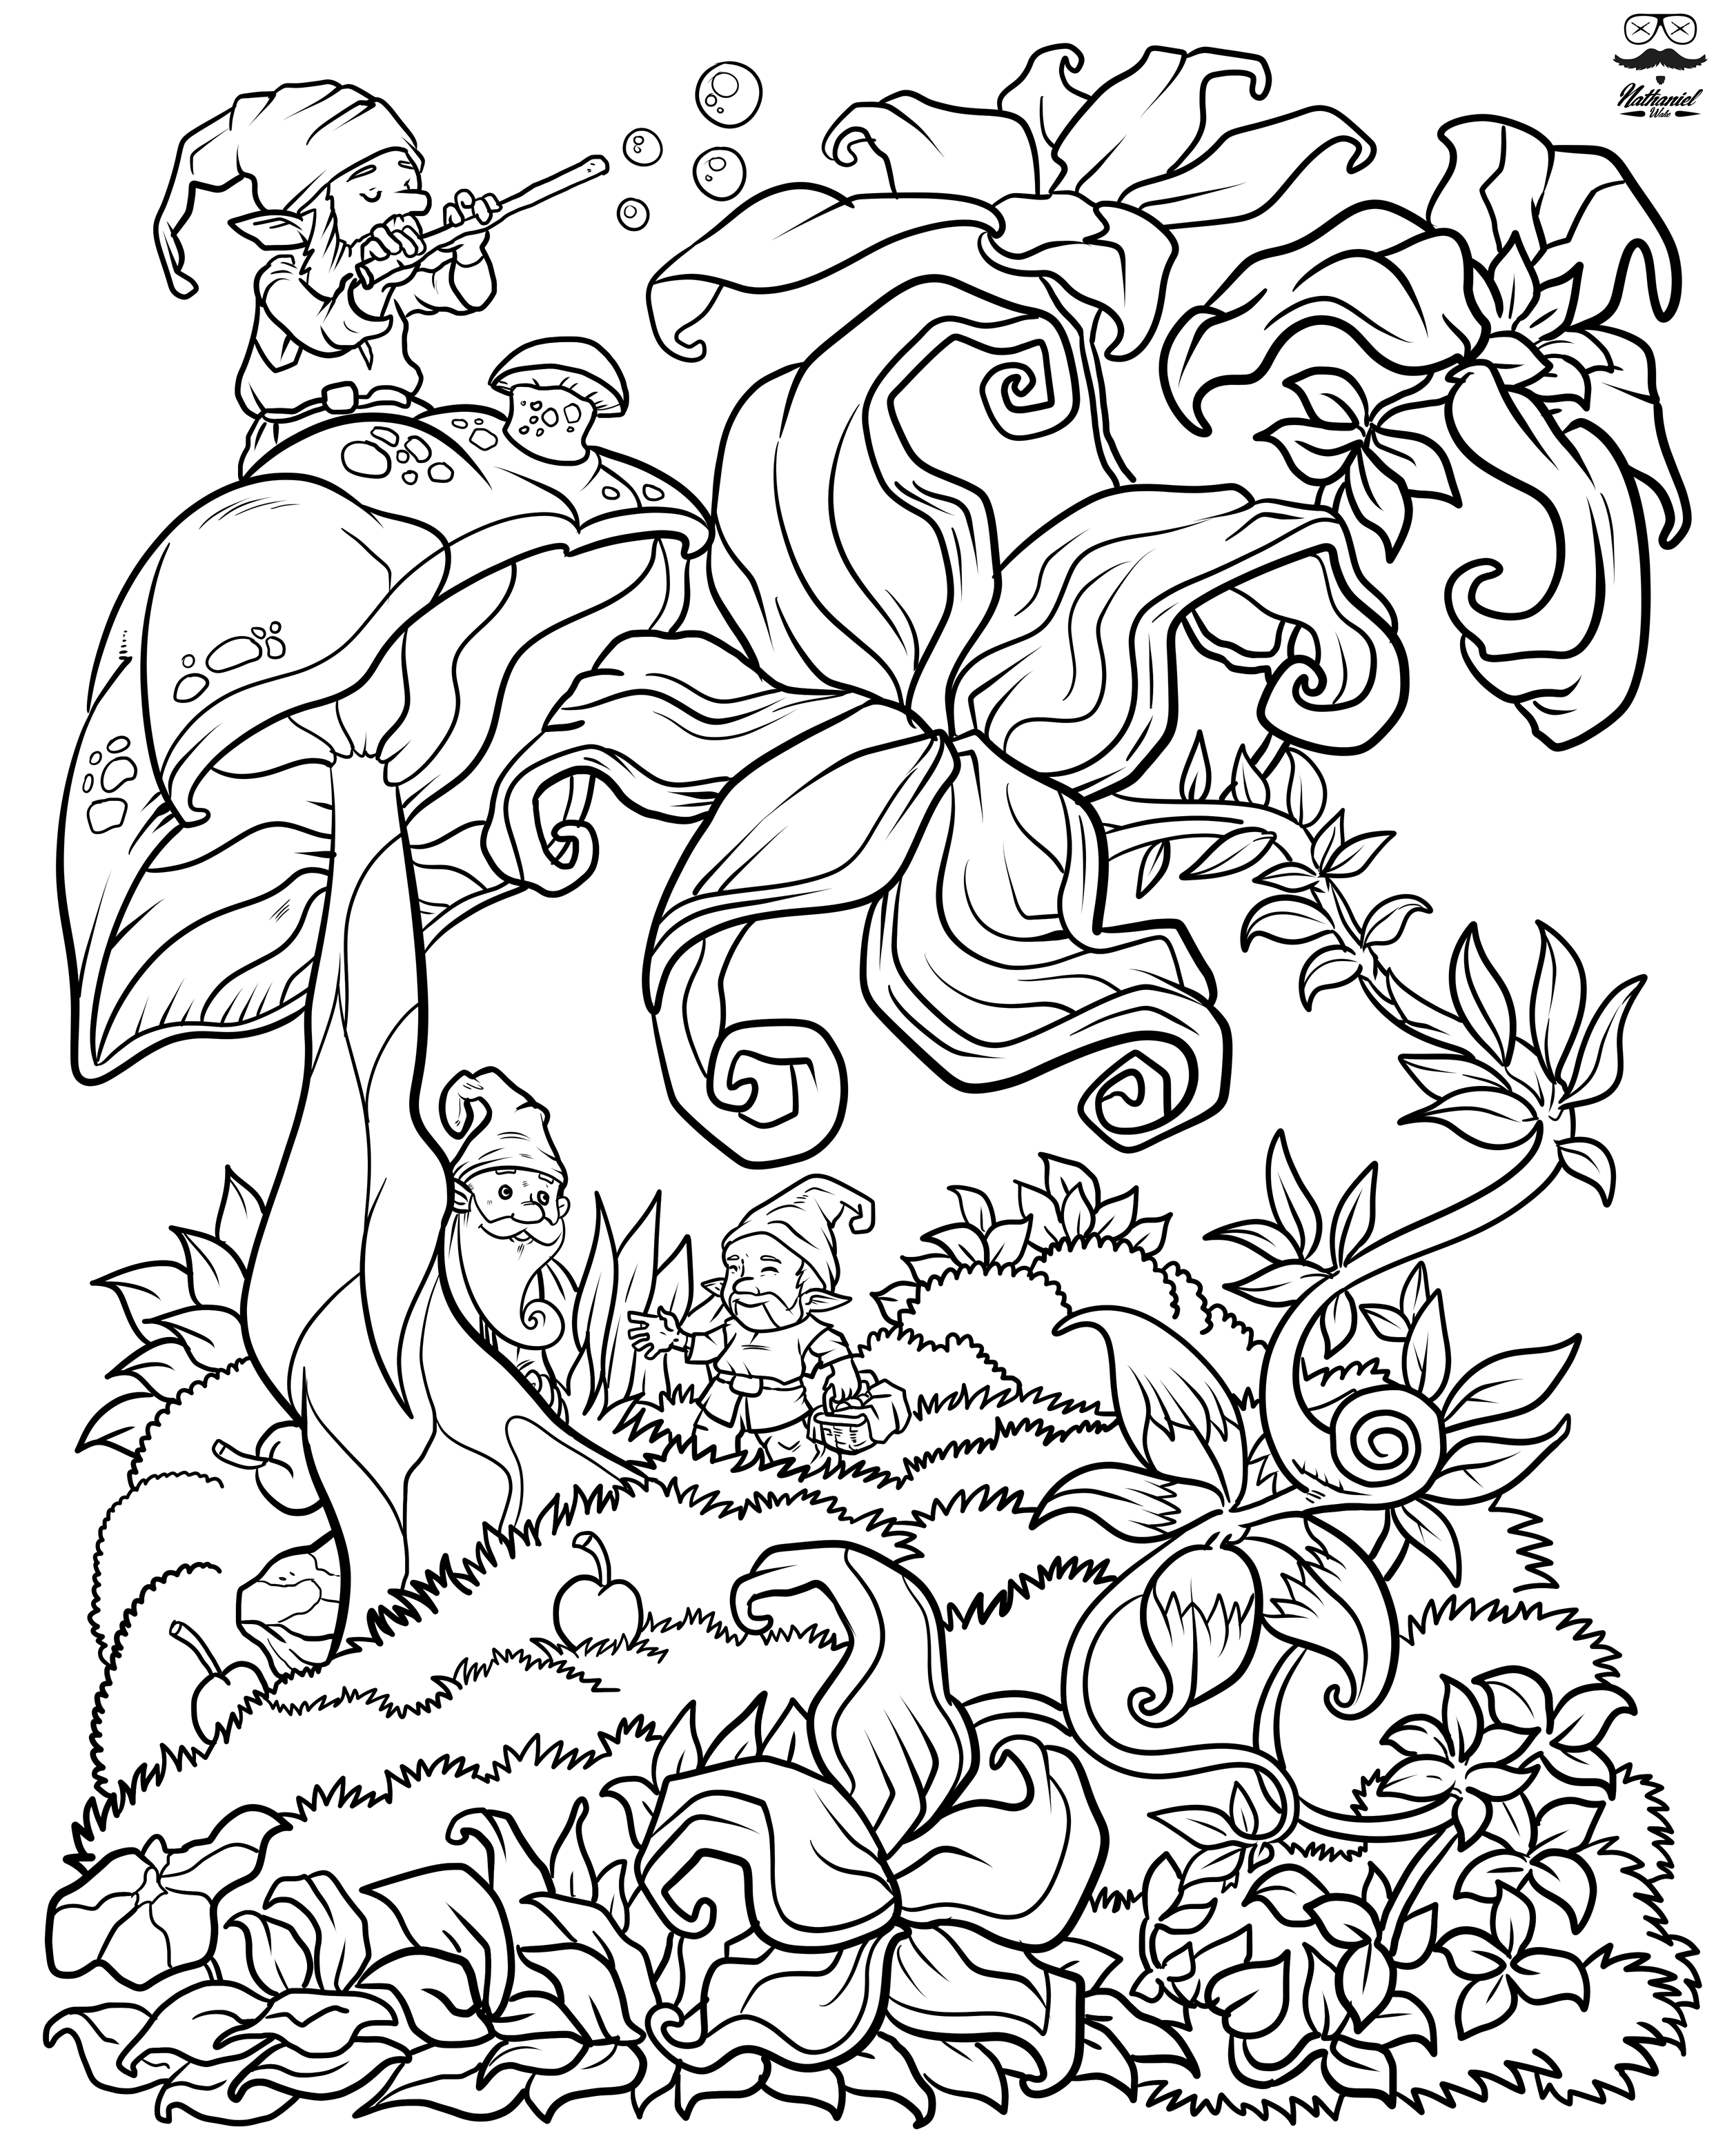 coloring pages fantasy fantasy coloring pages free printable fantasy coloring pages fantasy coloring pages